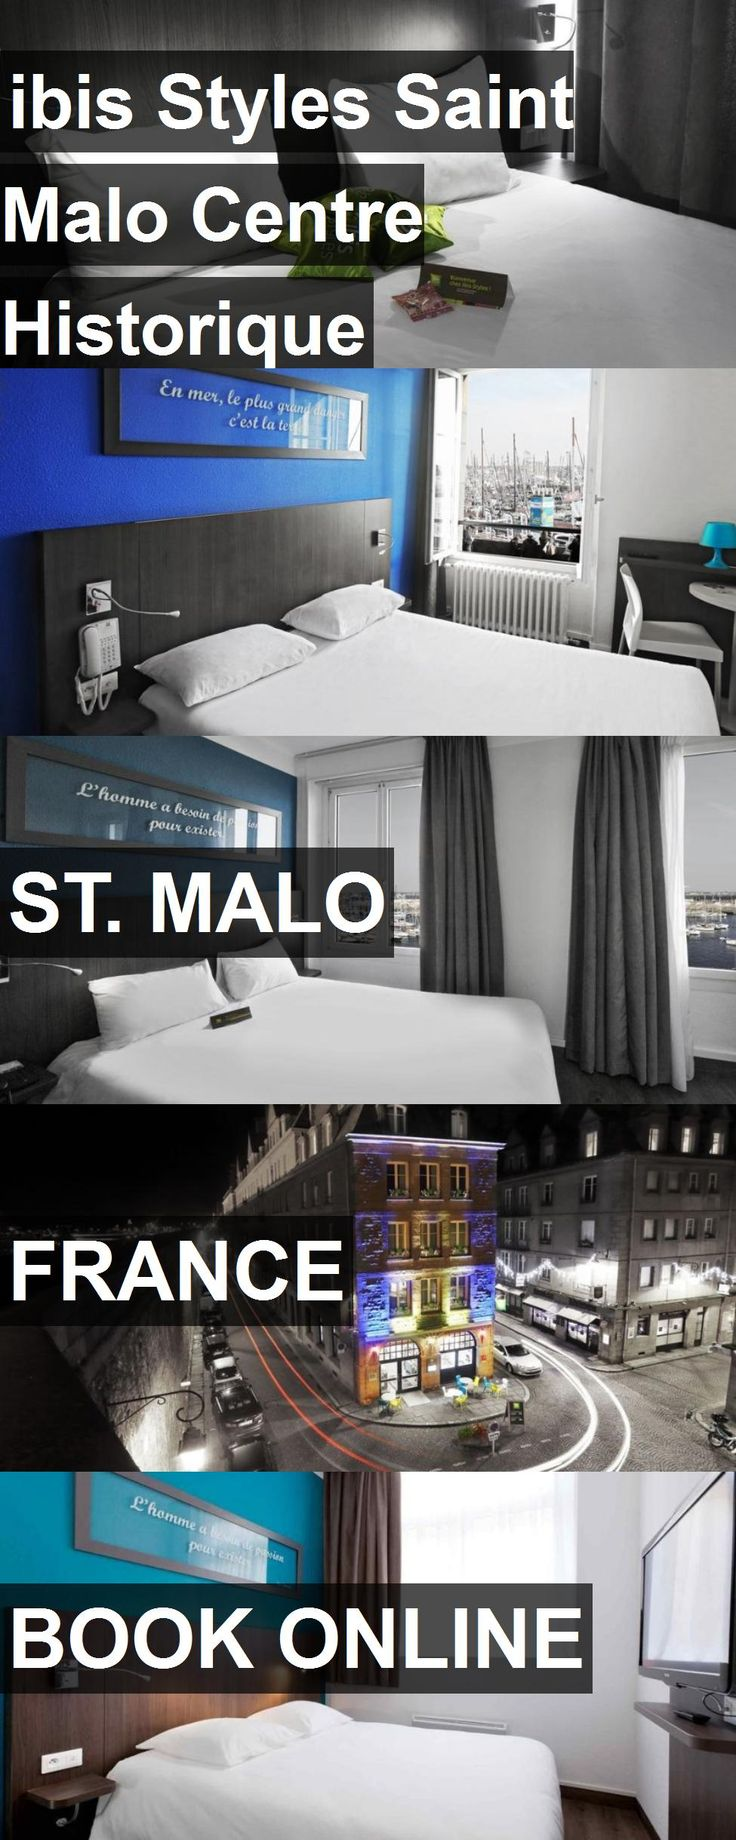 Hotel ibis Styles Saint Malo Centre Historique in St. Malo, France. For more information, photos, reviews and best prices please follow the link. #France #St.Malo #travel #vacation #hotel